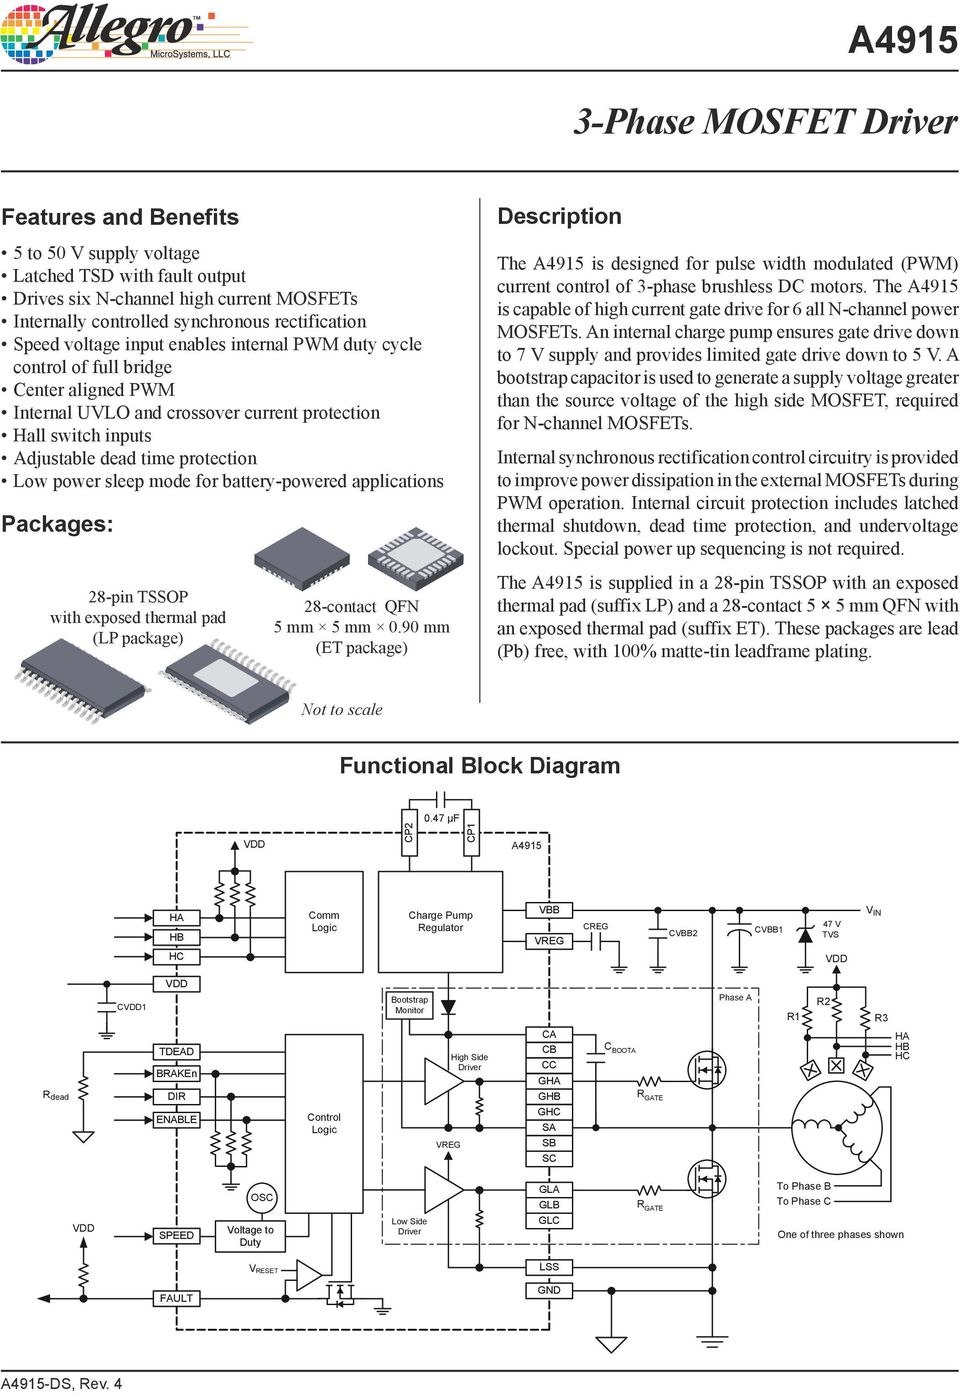 battery-powered applications Packages: Description The A4915 is designed for pulse width modulated (PWM) current control of 3-phase brushless DC motors.